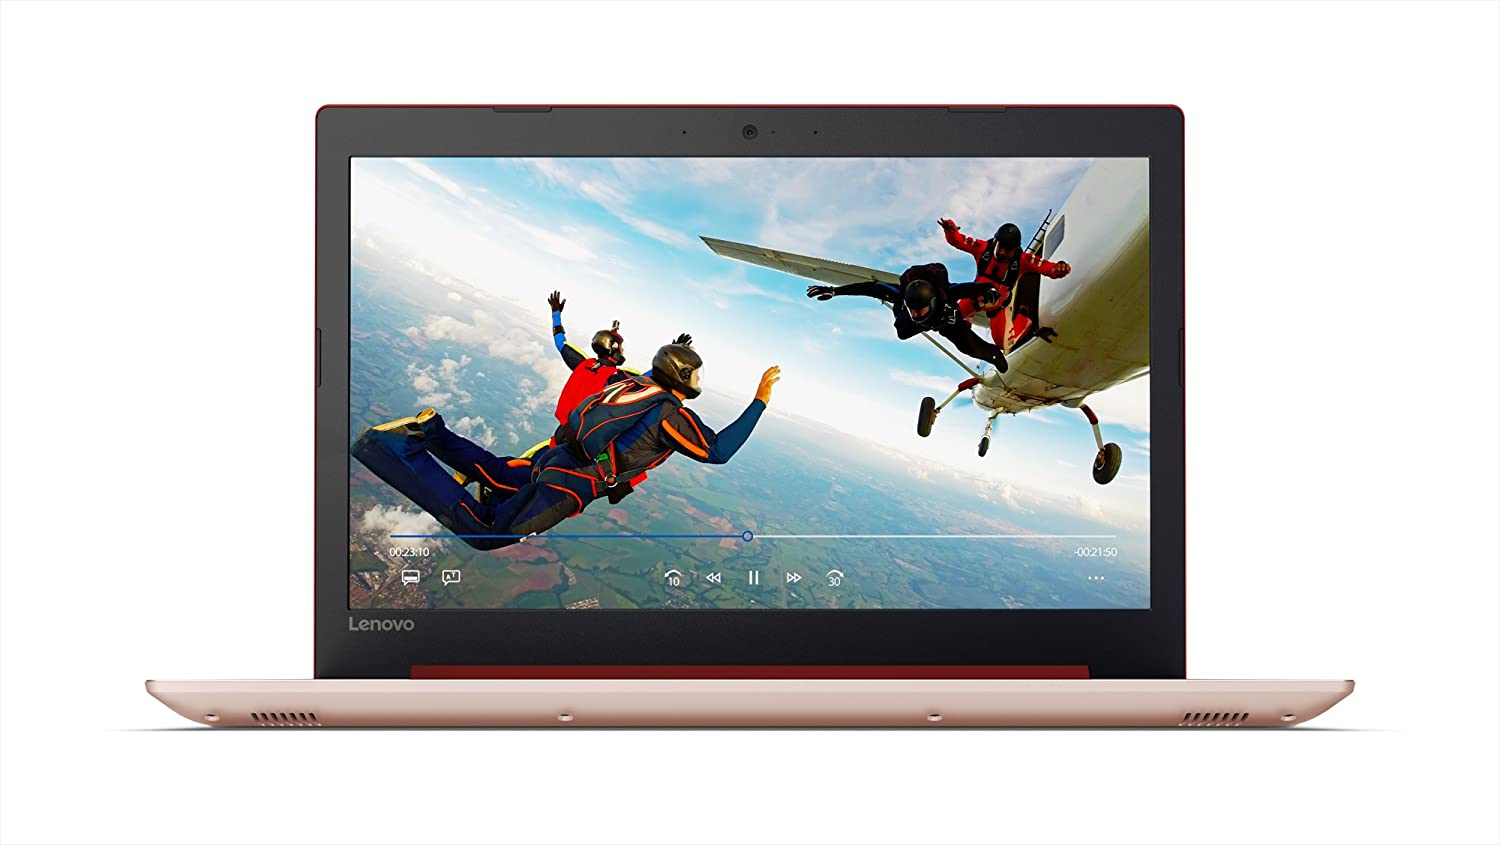 2020 Newest Premium Flagship Lenovo Ideapad 330 15.6 Inch HD Laptop (Intel Core i3-8130U (Beat i5-7200U) up to 3.4GHz, 12GB DDR4 RAM, 128GB SSD, WiFi, Bluetooth, HDMI, Windows 10) (Red)